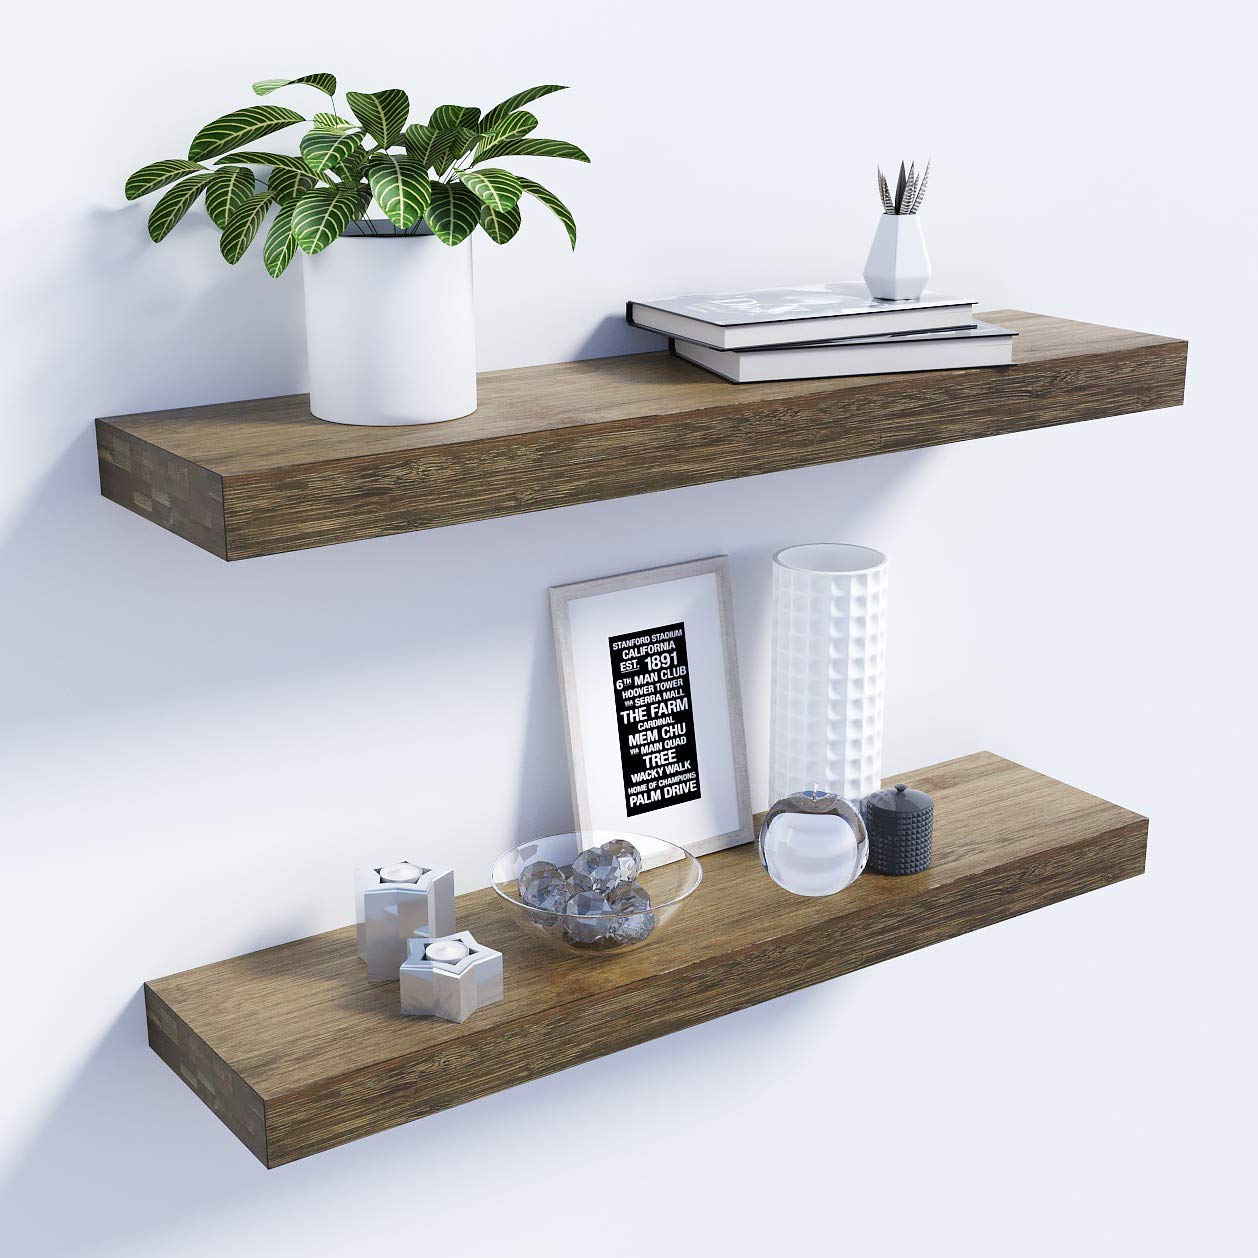 Bamfox Floating Shelves Set Of 2�natural Bamboo Wall Shelf Wall Mounted  Shelves�wall Mount Display Rack With Large Storage L23 X W6 For Kitchen  Living